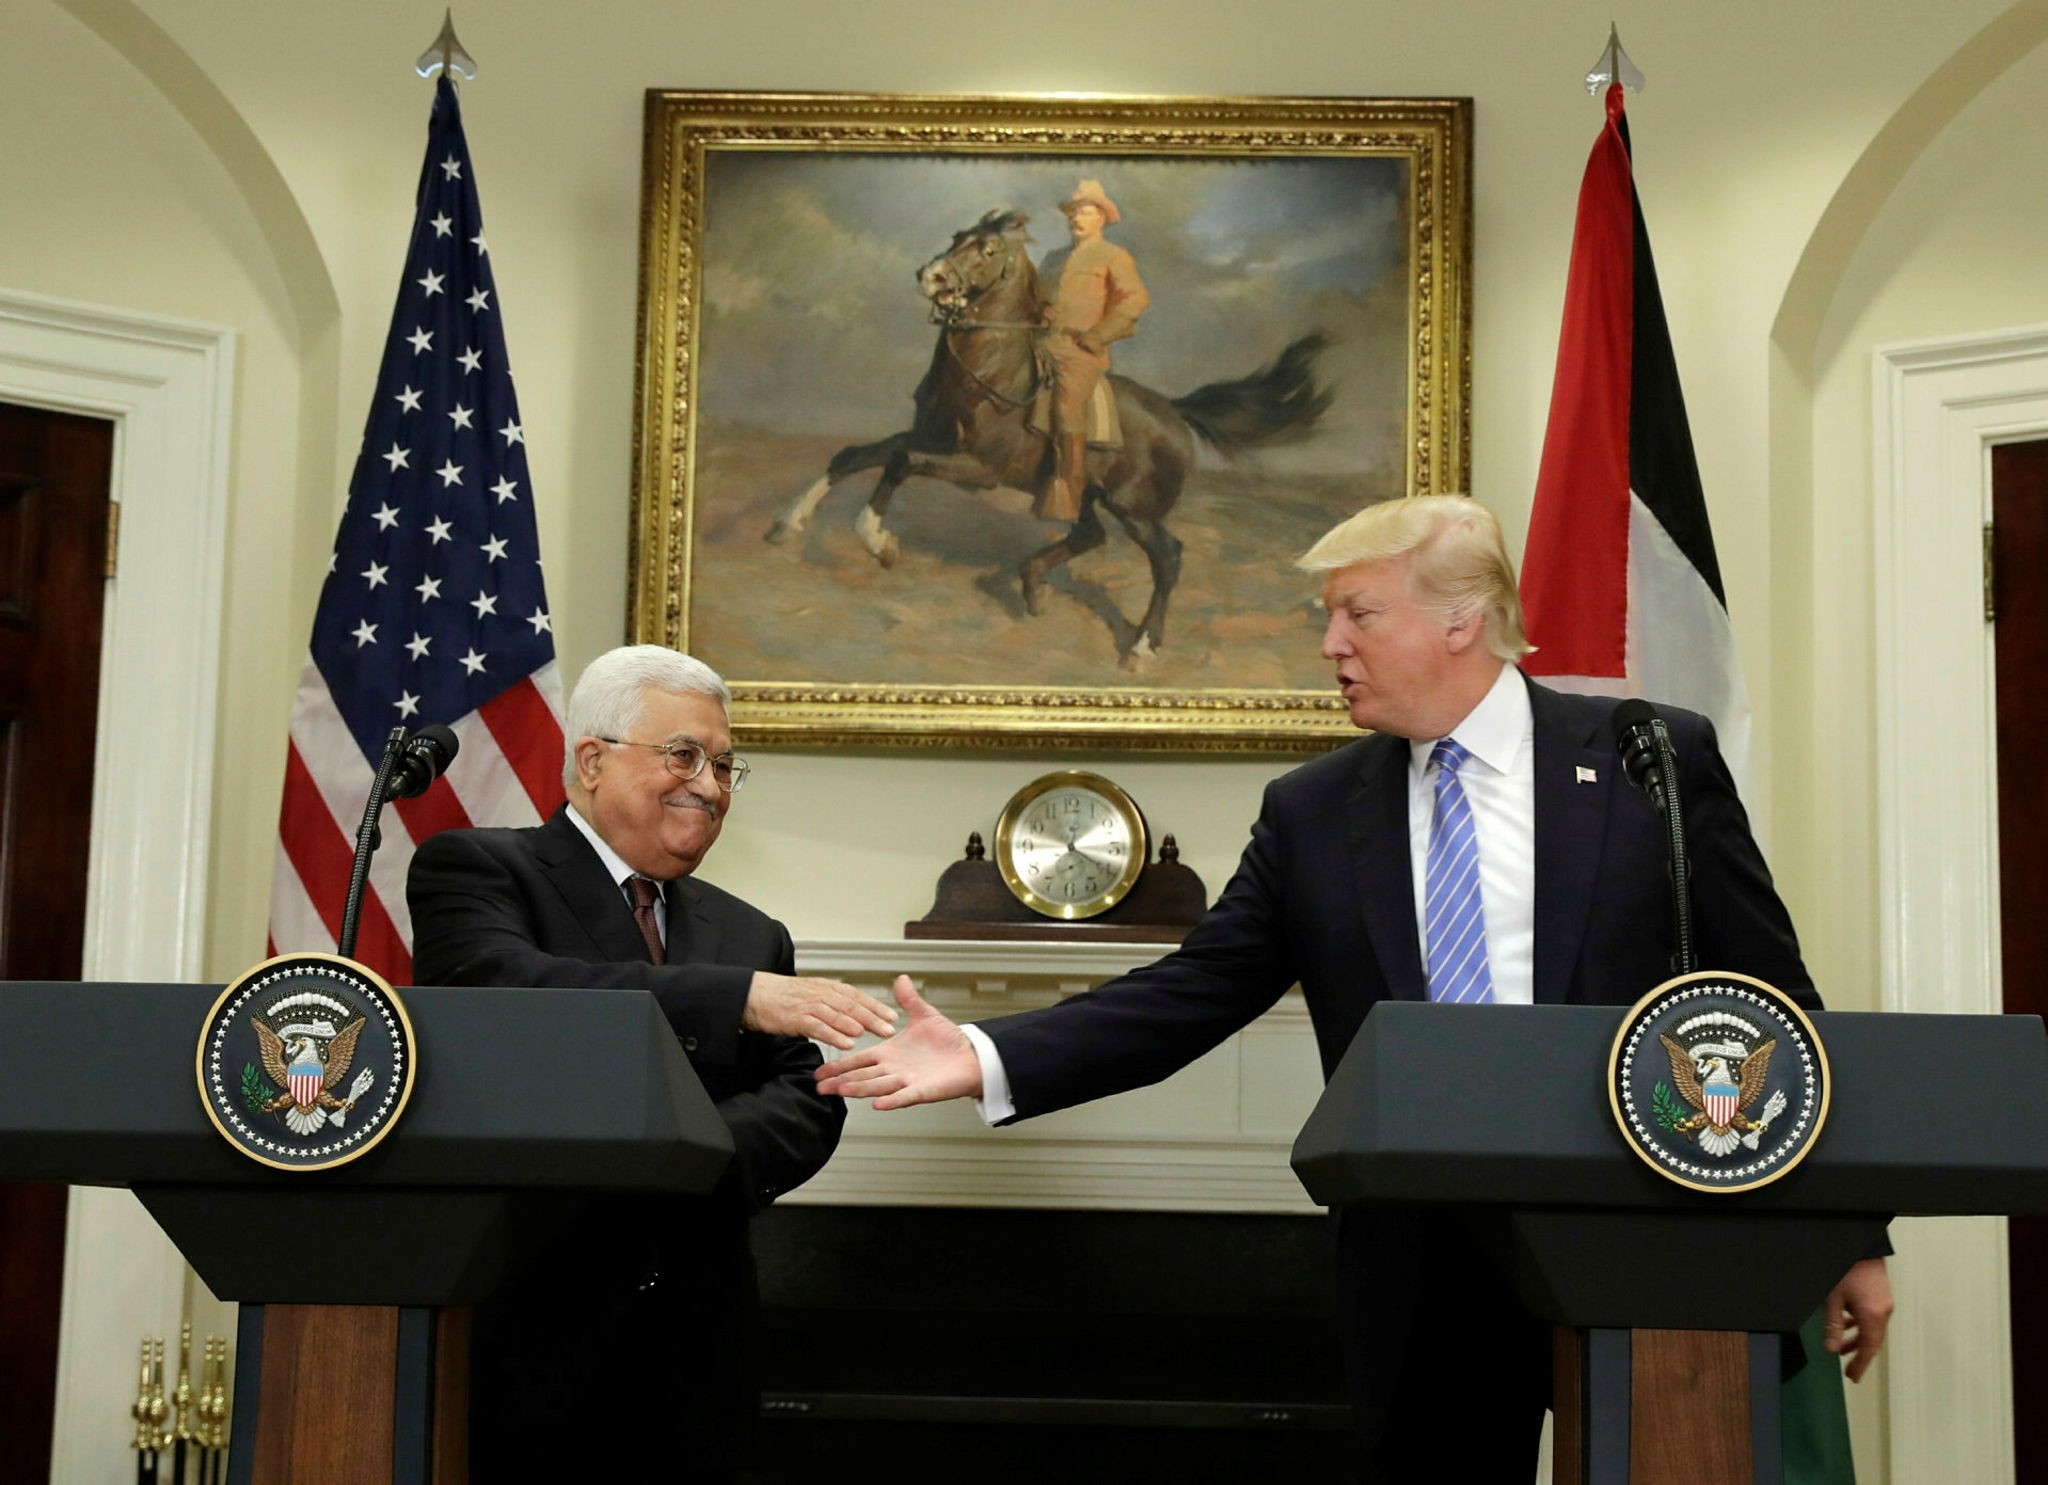 President Donald Trump shakes hands with his Palestinian counterpart Mahmoud Abbas during their news conference in the Roosevelt Room of the White House, Wednesday, May 3, 2017, in Washington. (AP Photo)